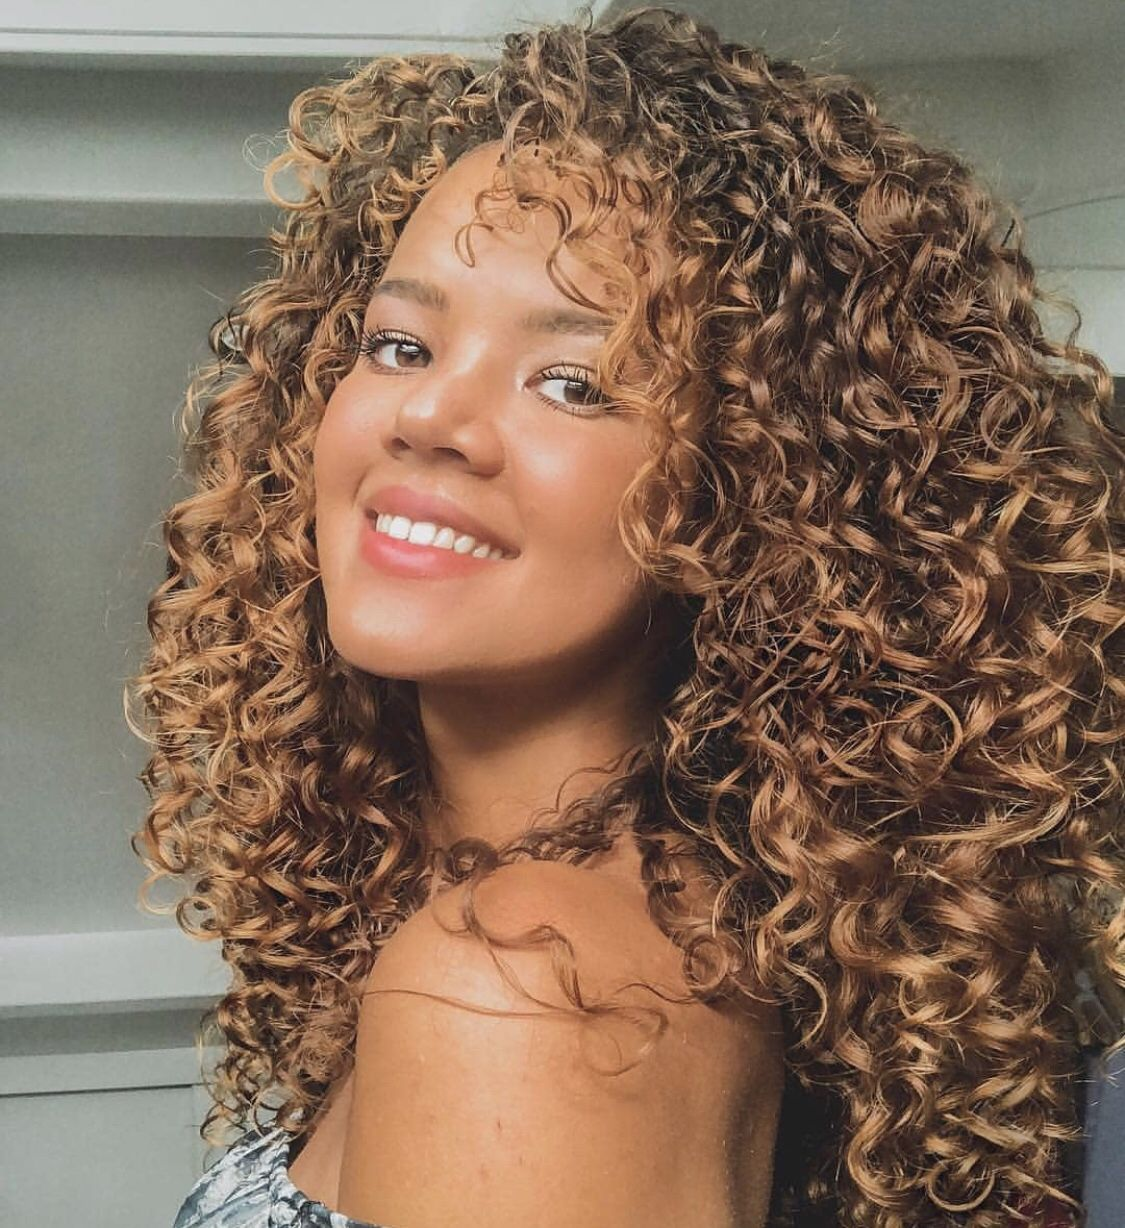 Bouncy Blonde Short Hairstyle Curls Click The Link To See More